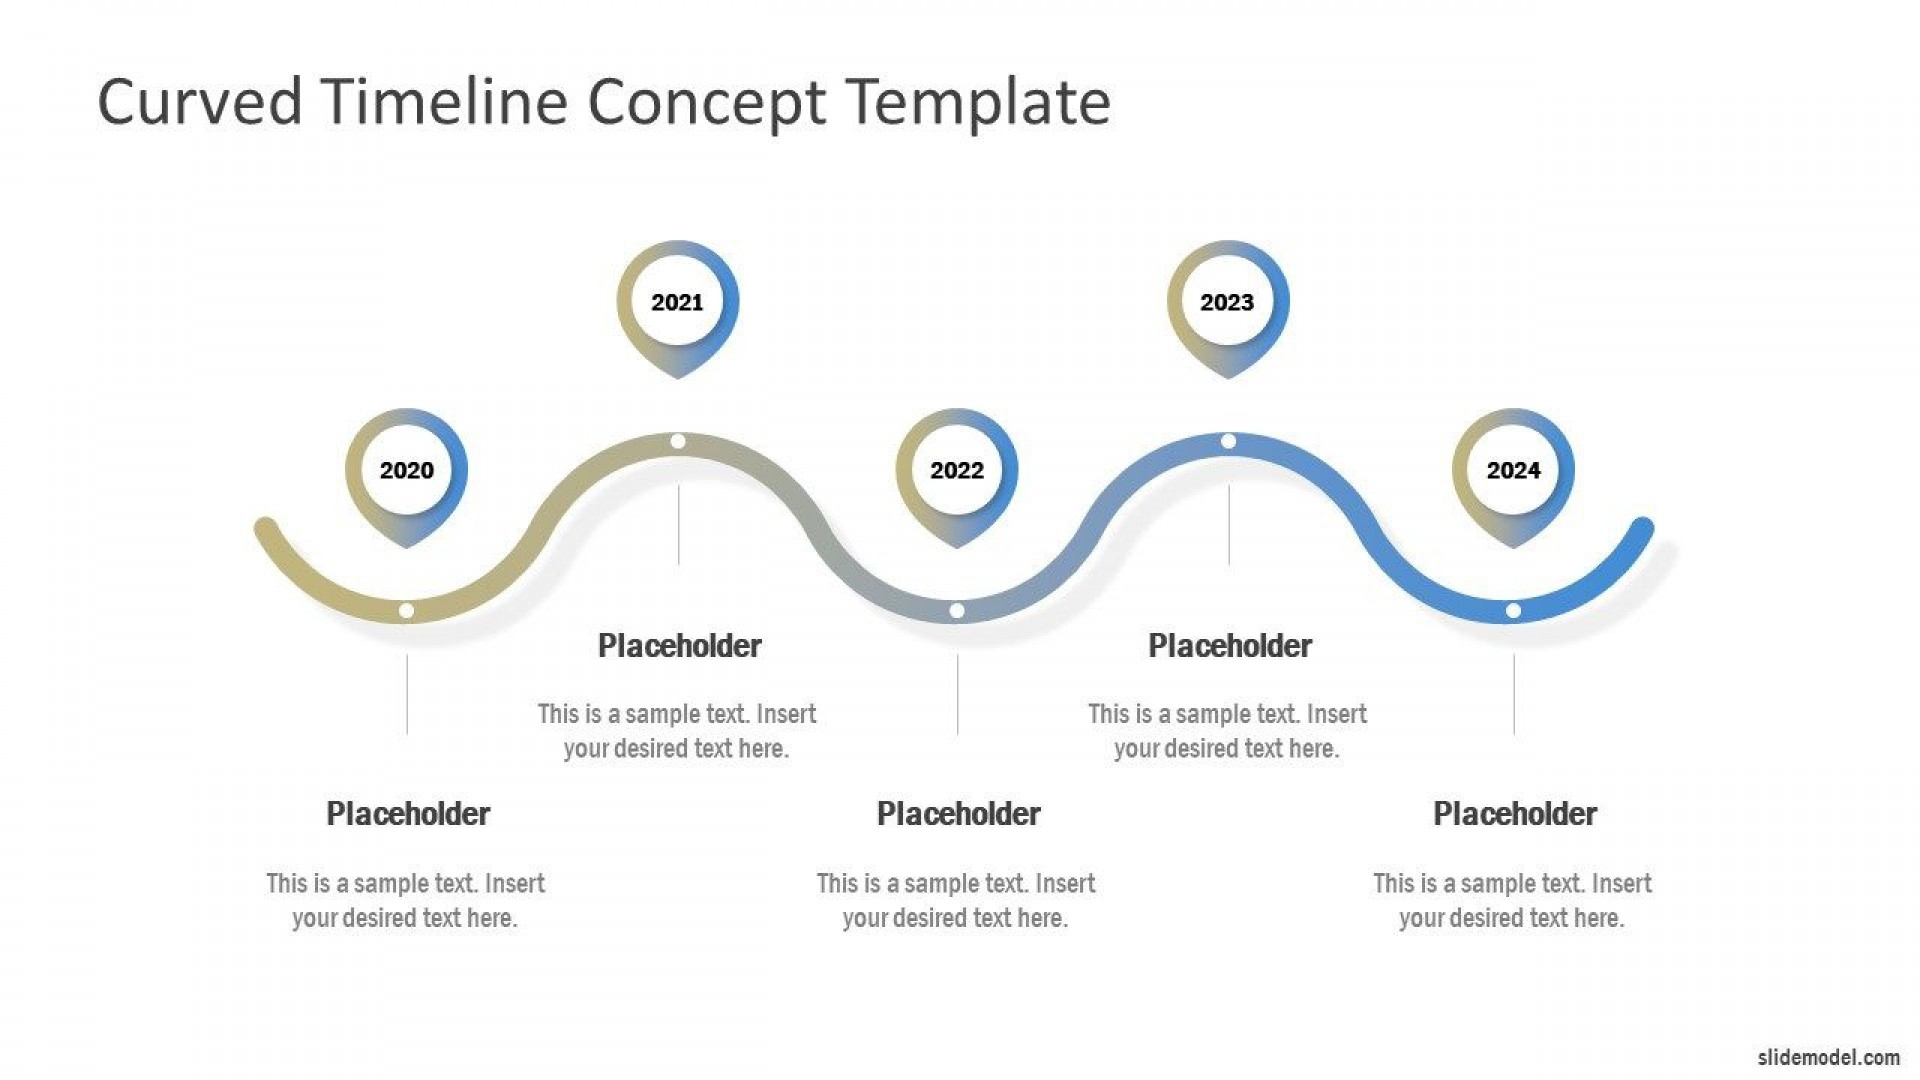 006 Unbelievable Timeline Template Ppt Free Download Inspiration  Infographic Powerpoint Project1920